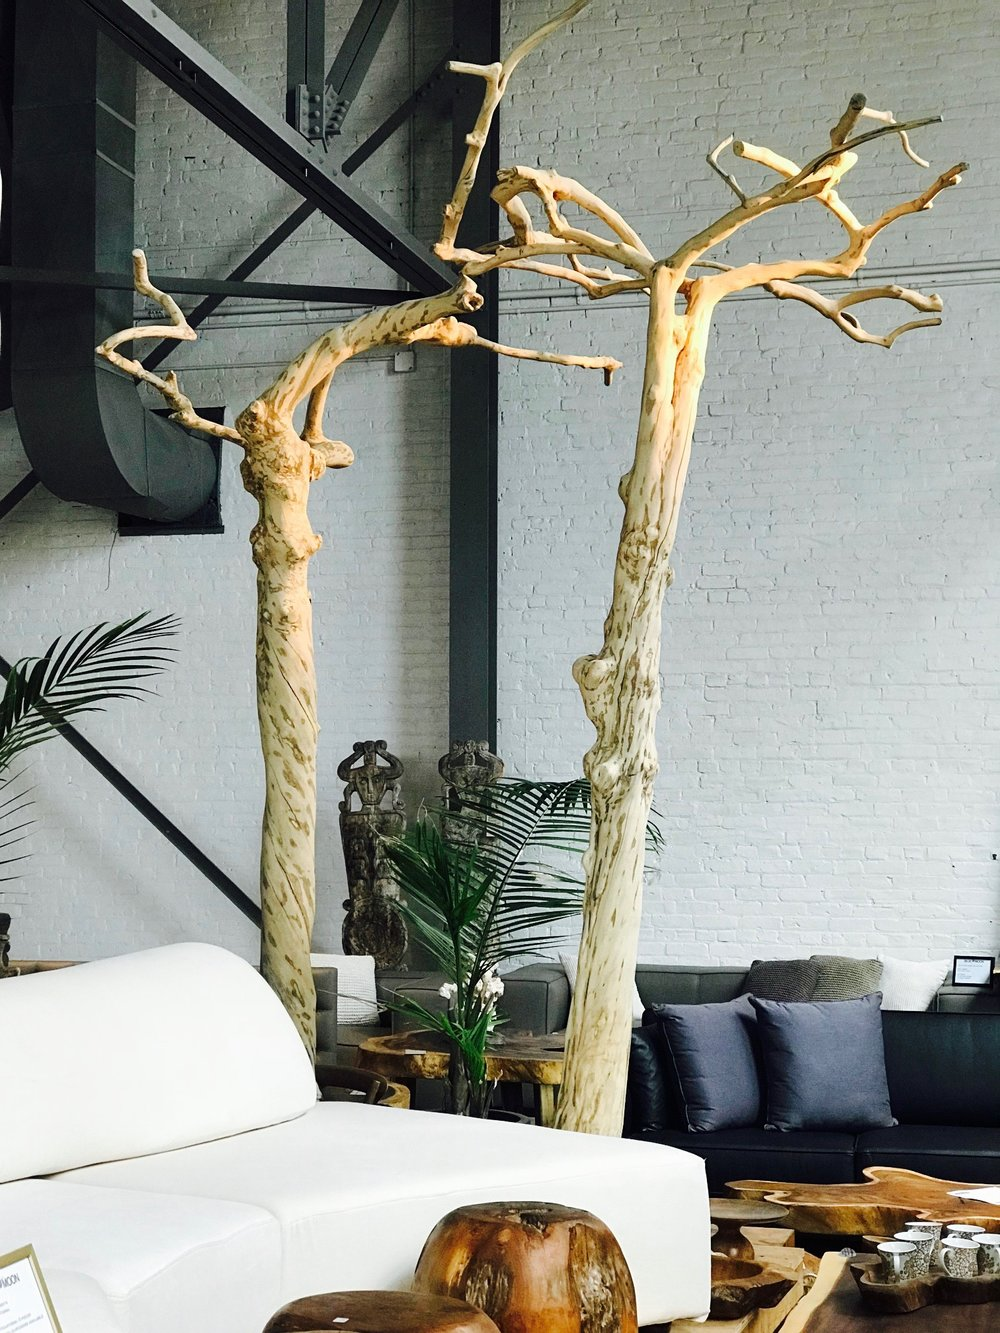 coffee tree sculptures, blue moon furniture and home decor store in winnipeg. .jpg